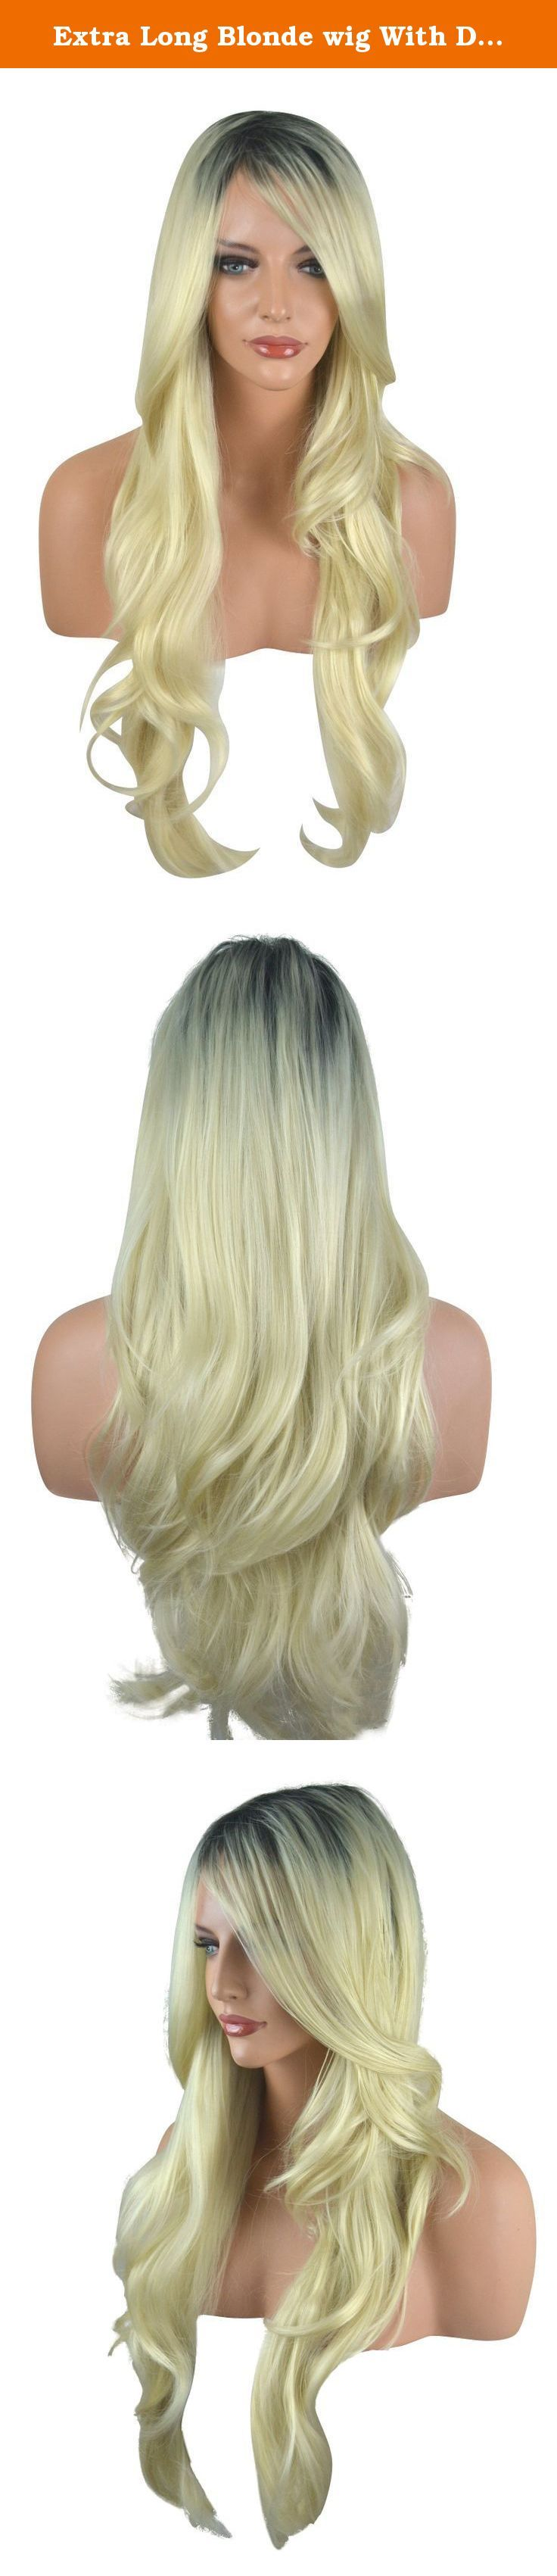 Extra Long Blonde wig With Dark Roots. Platinum Blonde, Dark Roots, Realistic look and feel, Approx. 26 inches, Comfy Cap fit.